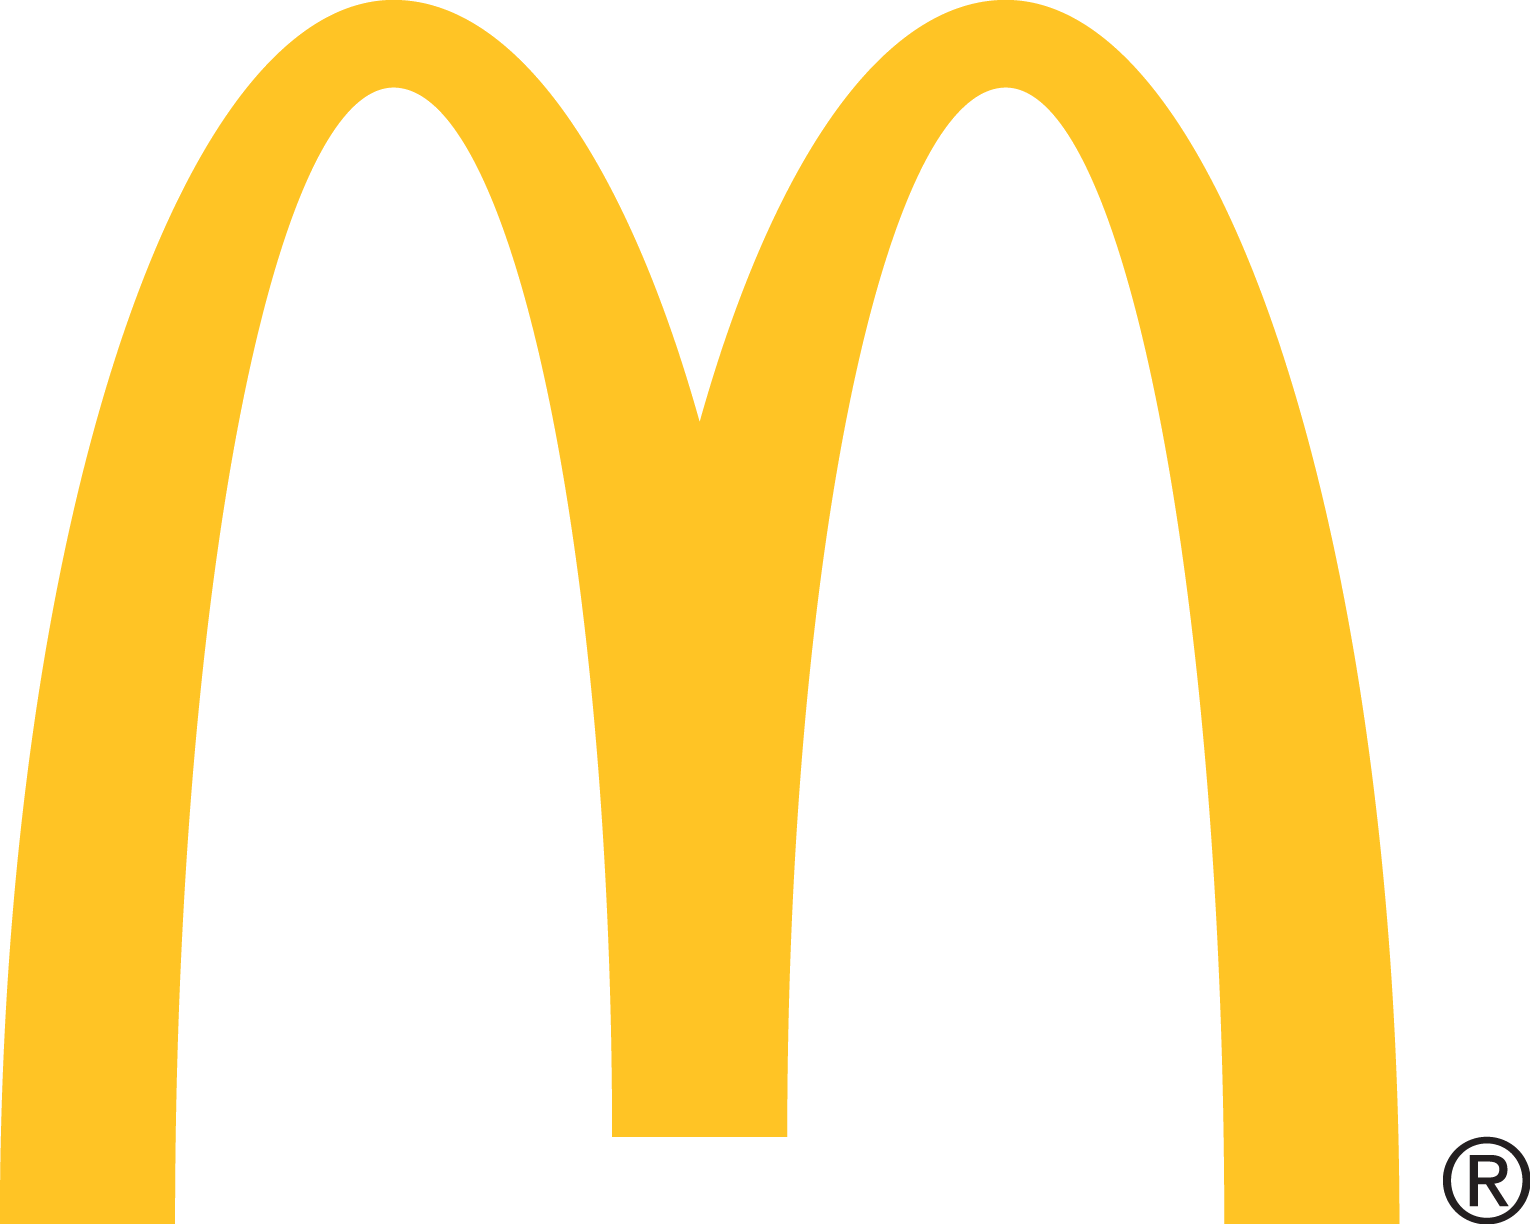 Mcdonalds icon clipart clip art library stock Mcdonalds Logo Vector Icon Template Clipart Free Transparent Png - AZPng clip art library stock